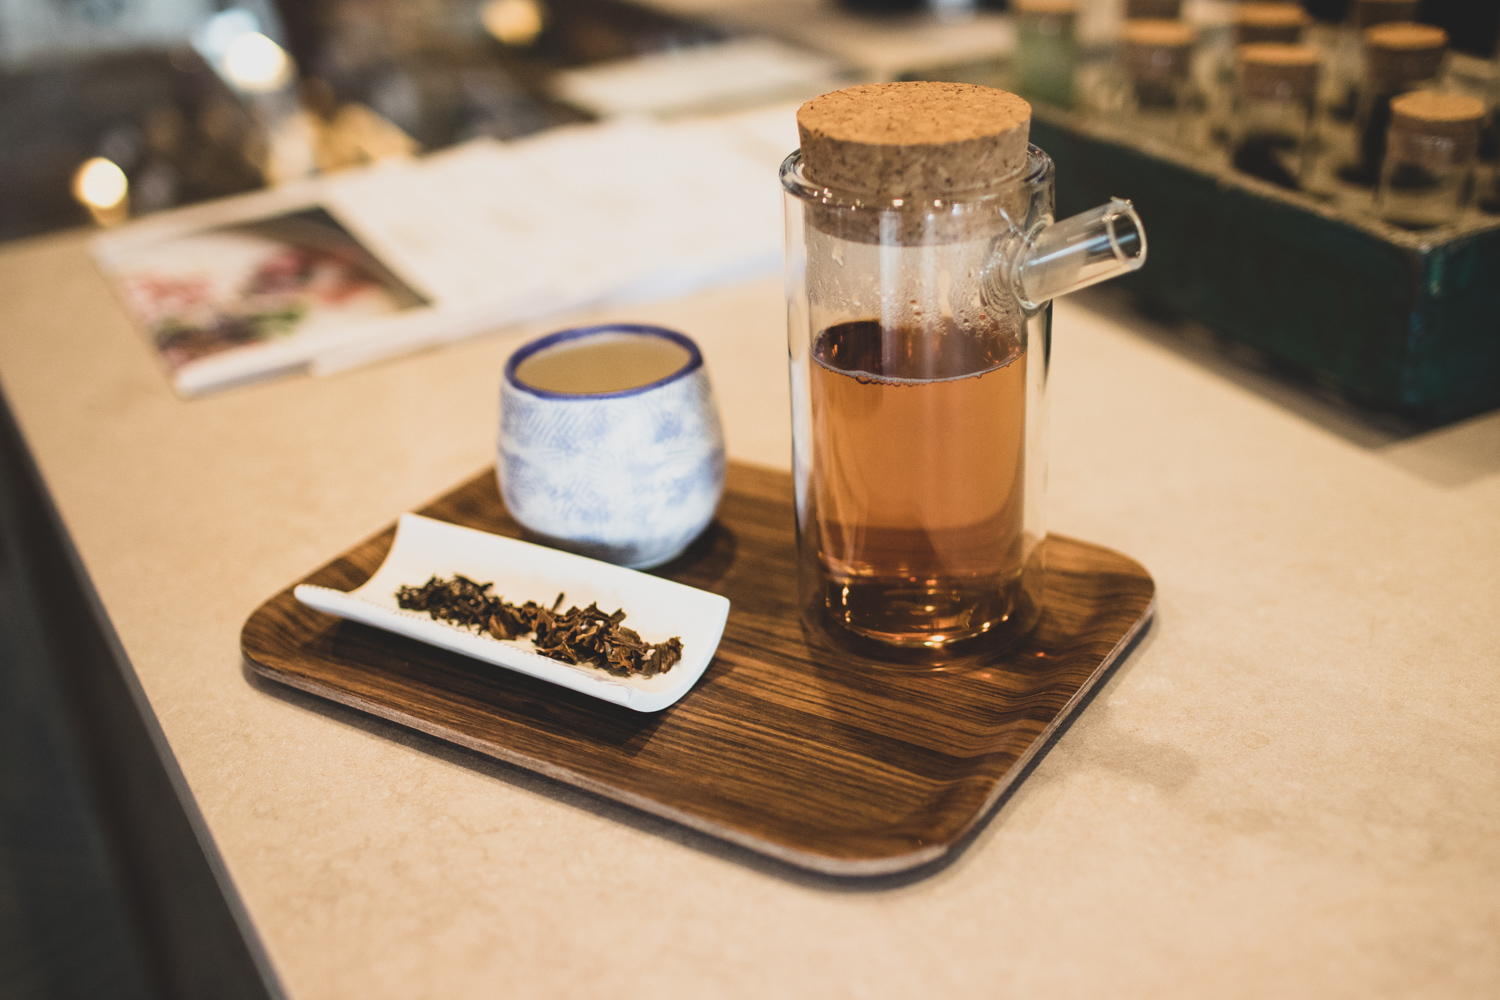 Tea drinkers will appreciate a very strong focus on tea at Cold Brew Bar.  Profiled on the @coldbrewbar Instagram here .